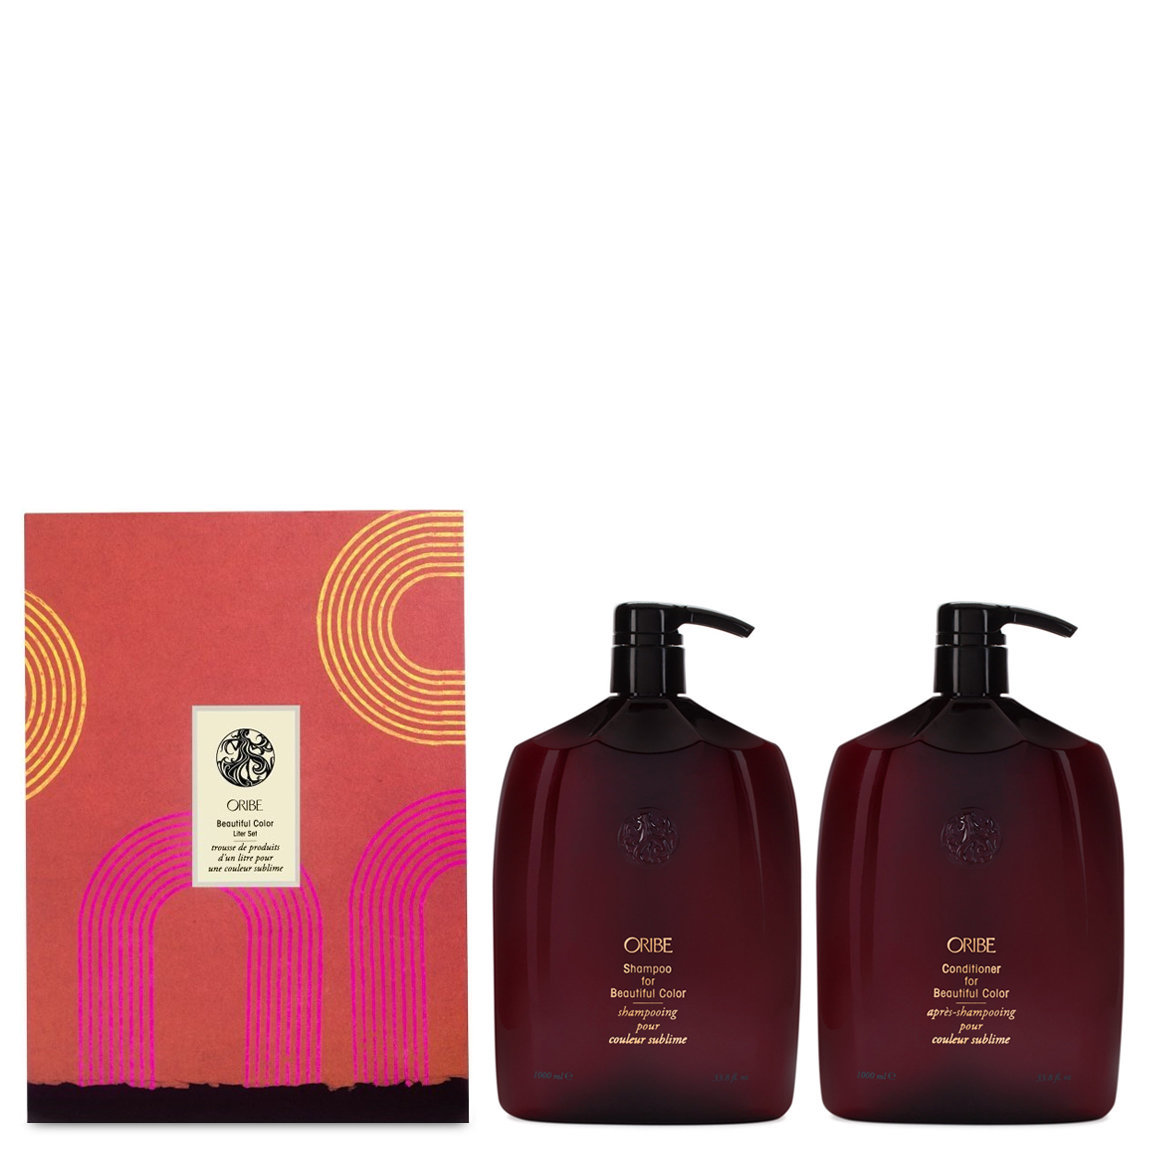 Oribe Beautiful Color Liter Set product swatch.